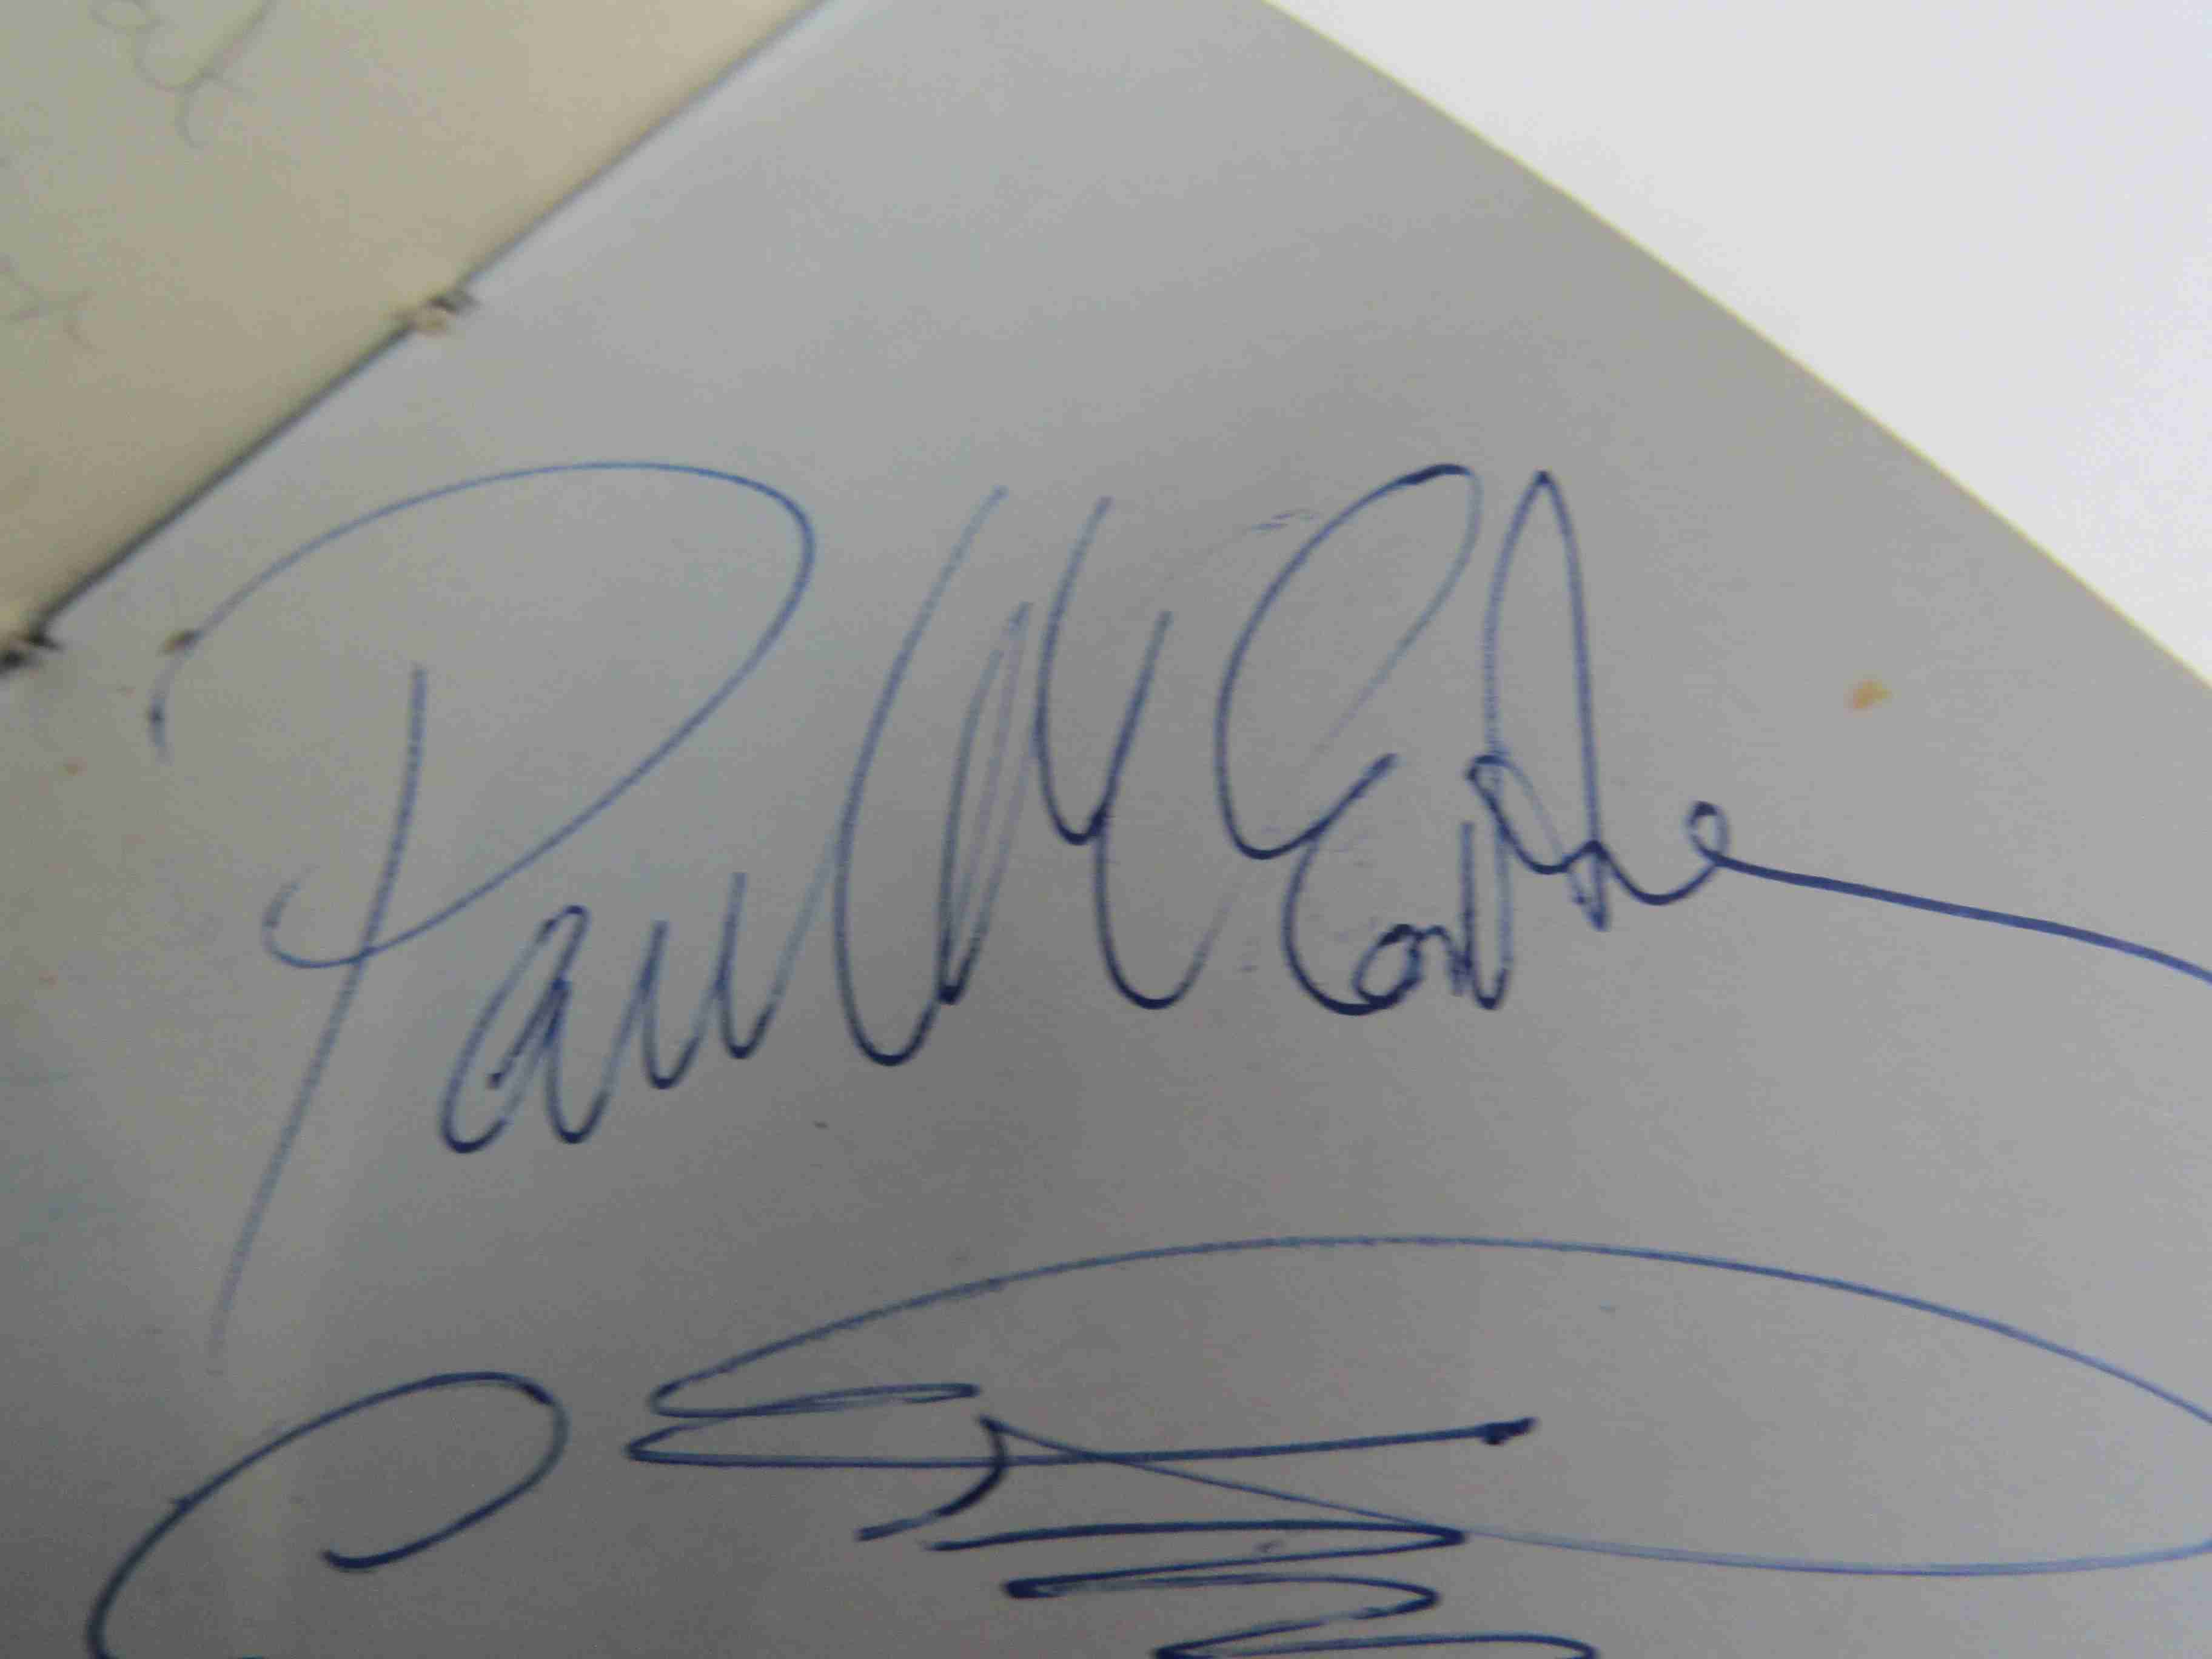 Two 1950s/60s autograph books containing autographs by Benny Hill, Honor Blackman, Barbara Shelley, - Image 3 of 34